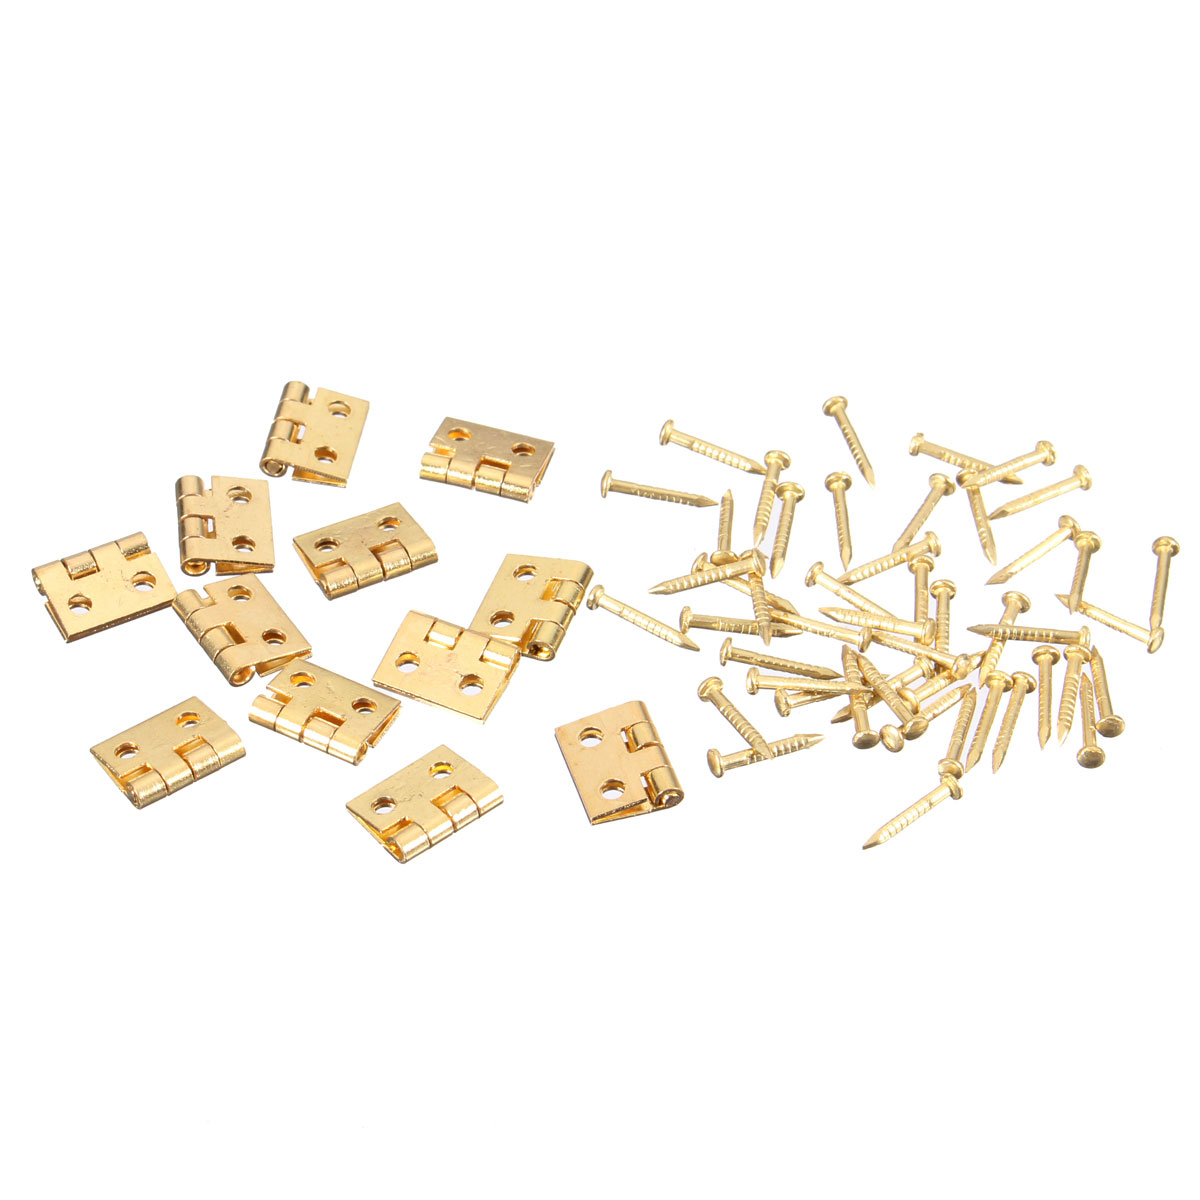 12 set Mini Metal Hinges with Approx 48 Screws For barbie jewelry Box Repairing/ Doll House Furniture/ Cabinet/ Drawer Butt 4pcs 38x21mm antique bronze cabinet hinges furniture accessories door hinges drawer jewellery box hinges for furniture hardware